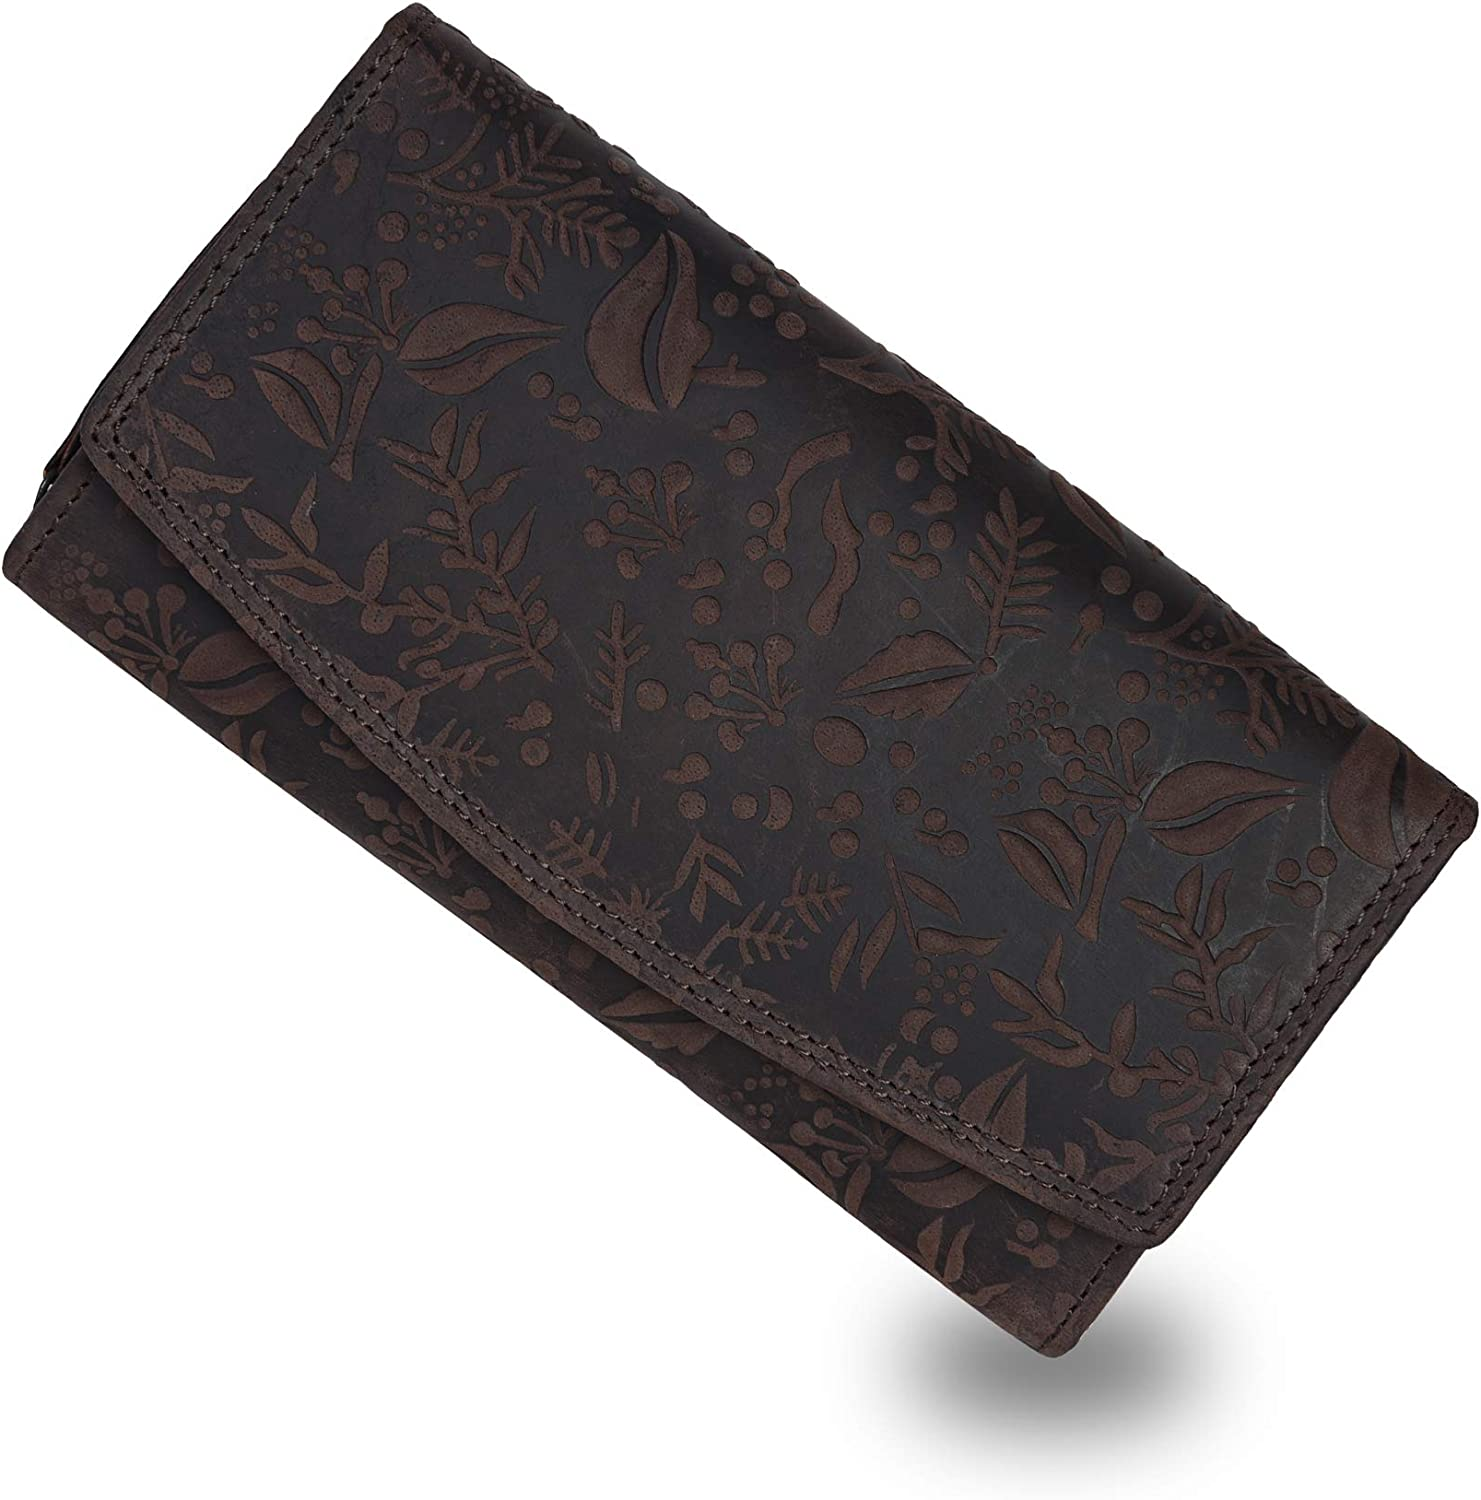 RFID Flower embossed Leather Wallet for Women-Multi Credit Card Slots,Mobile case Coin Purse with ID Window-by LEVOGUE (Brown Oily Hunter)